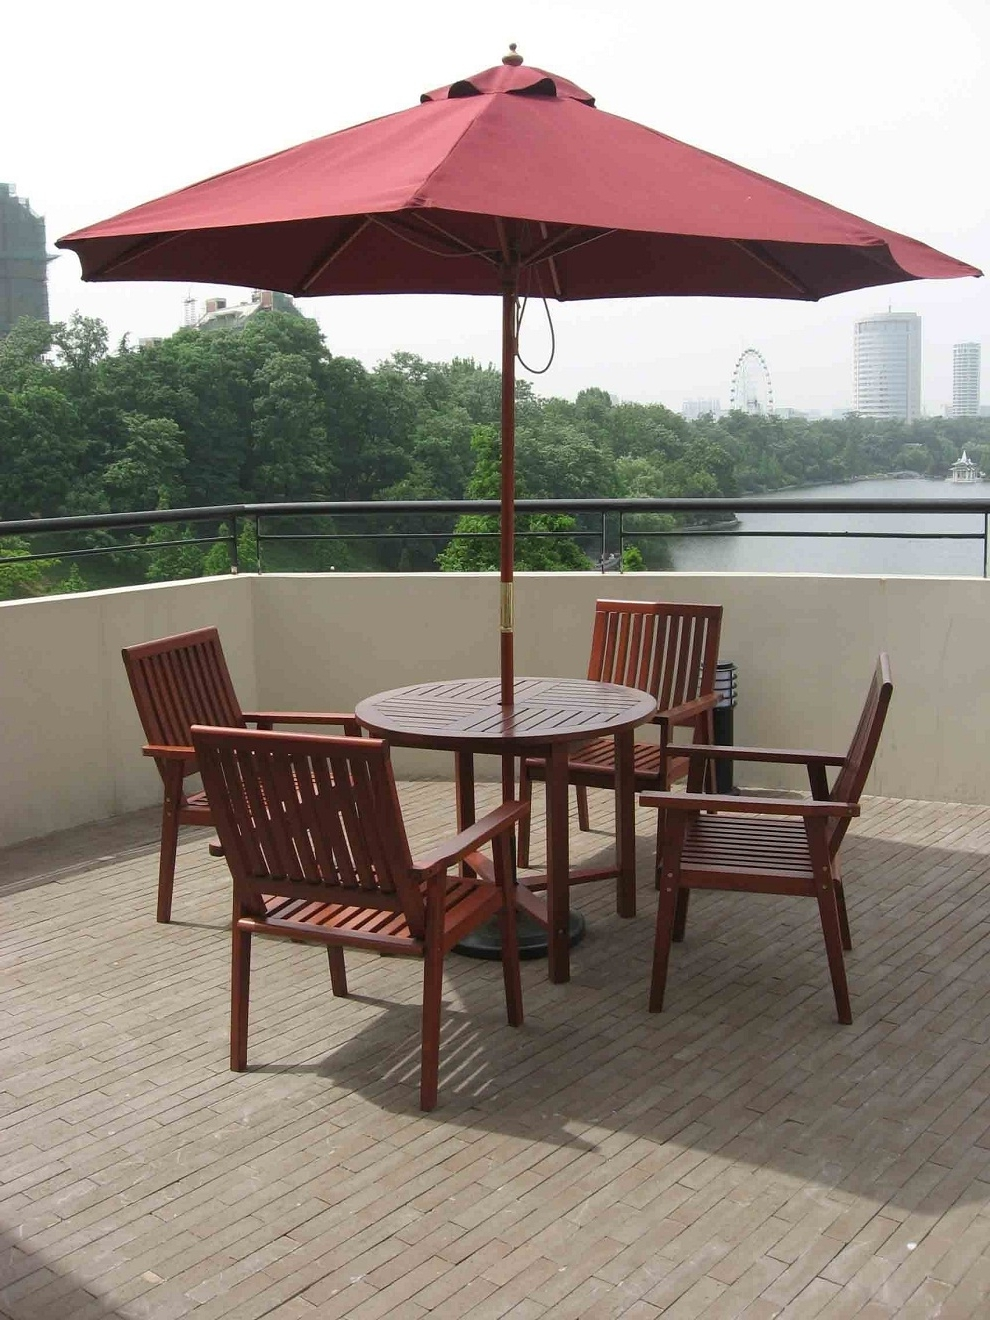 Patio Outdooratio Table Chairs And Umbrellas Umbrella Set Restaurant Pertaining To Latest Patio Furniture With Umbrellas (View 6 of 20)